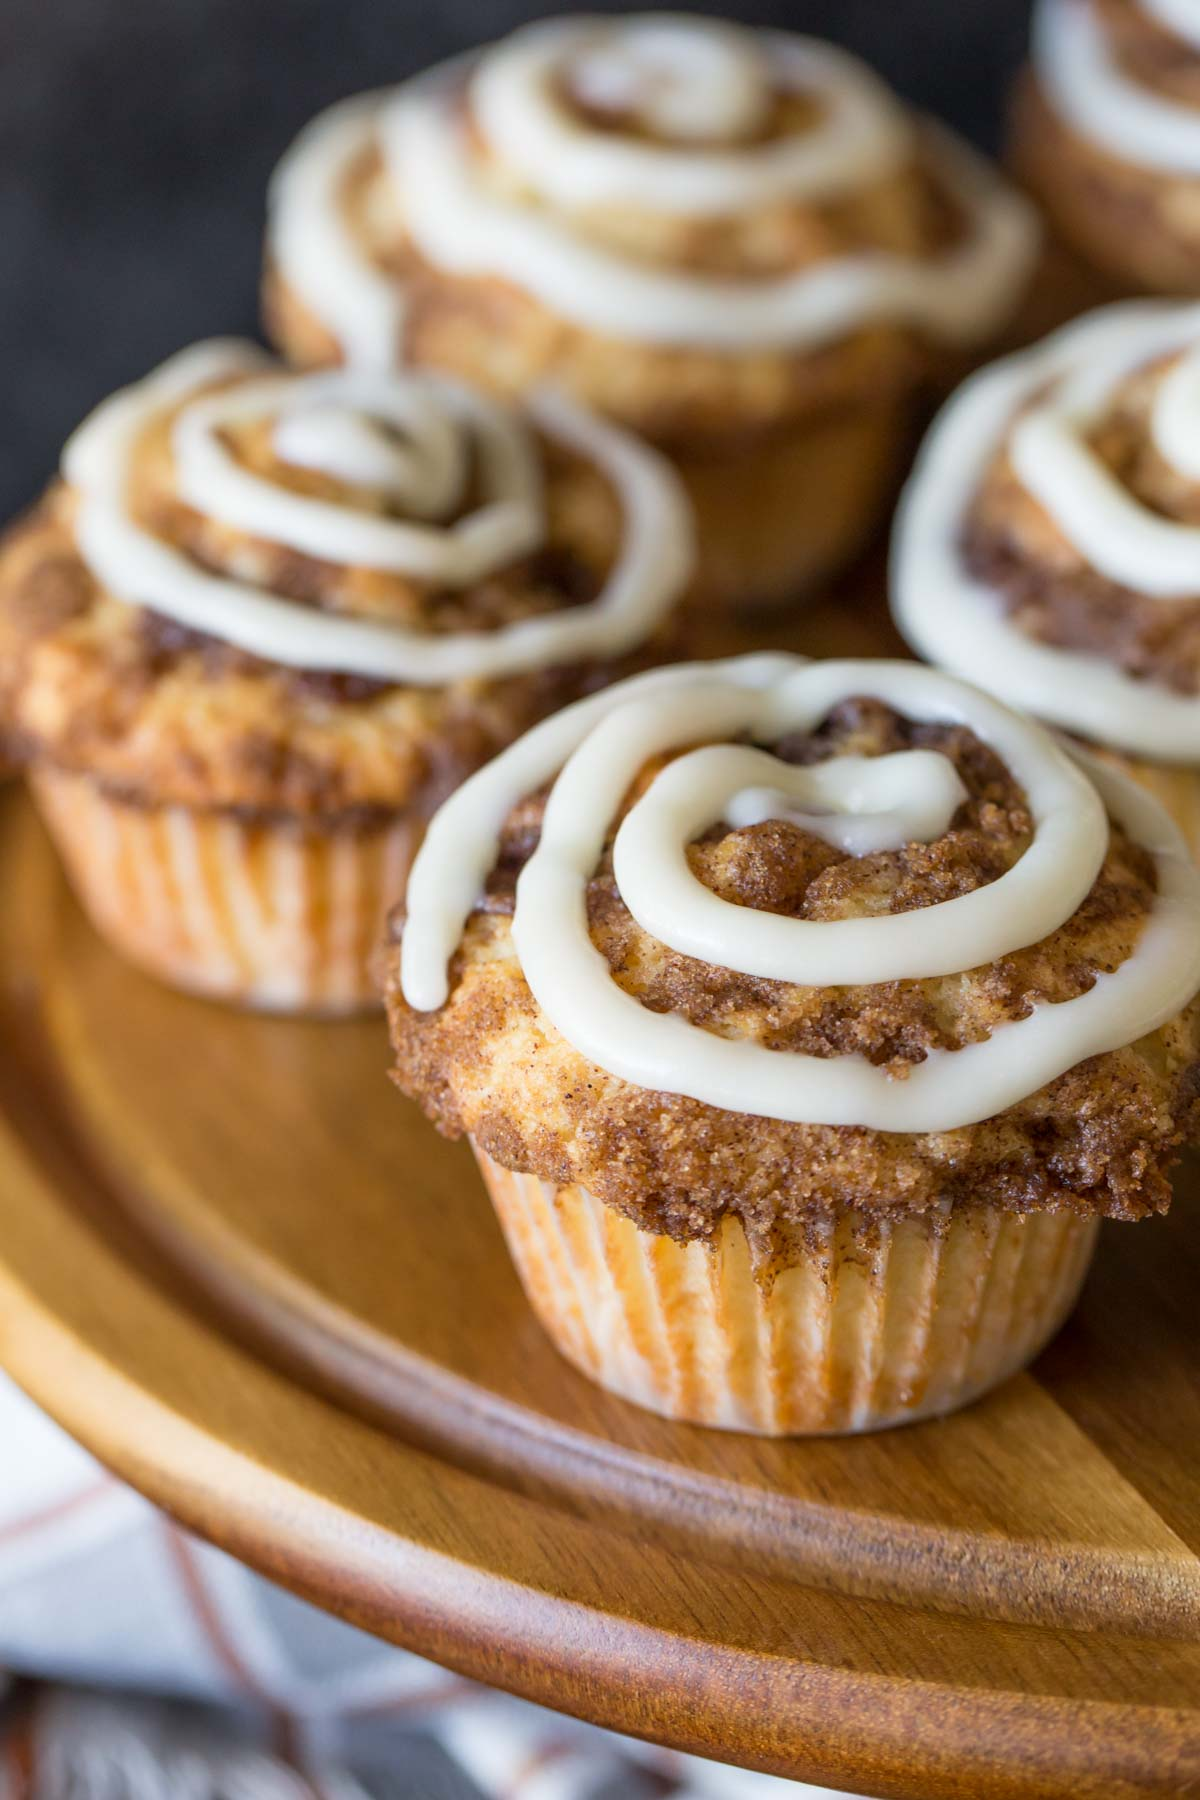 Cinnamon Roll Muffins with a cream cheese icing swirl on a wooden cake stand.